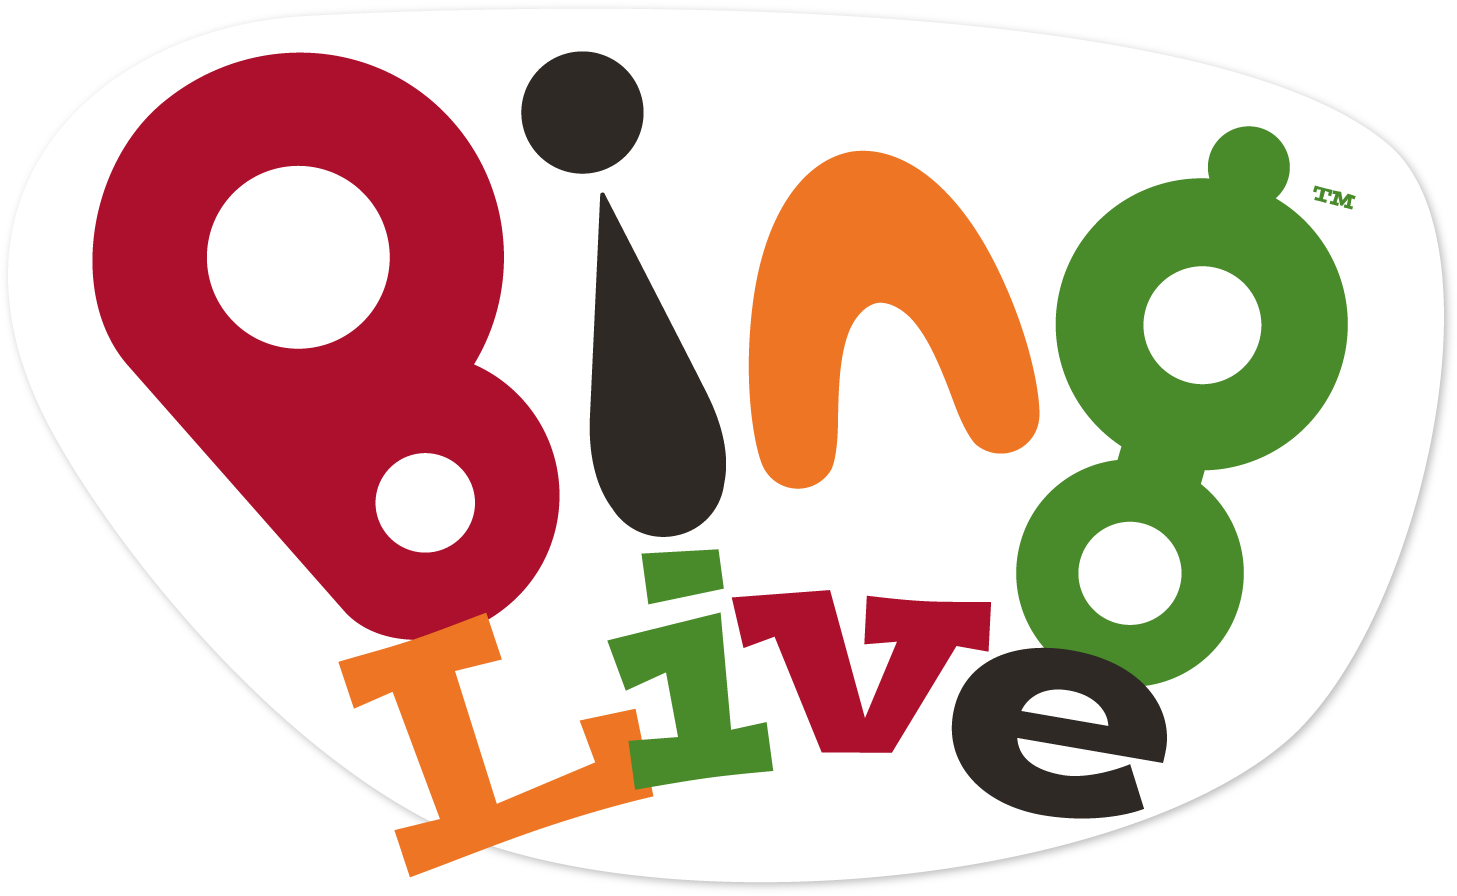 Bing clipart. Live full size pinclipart